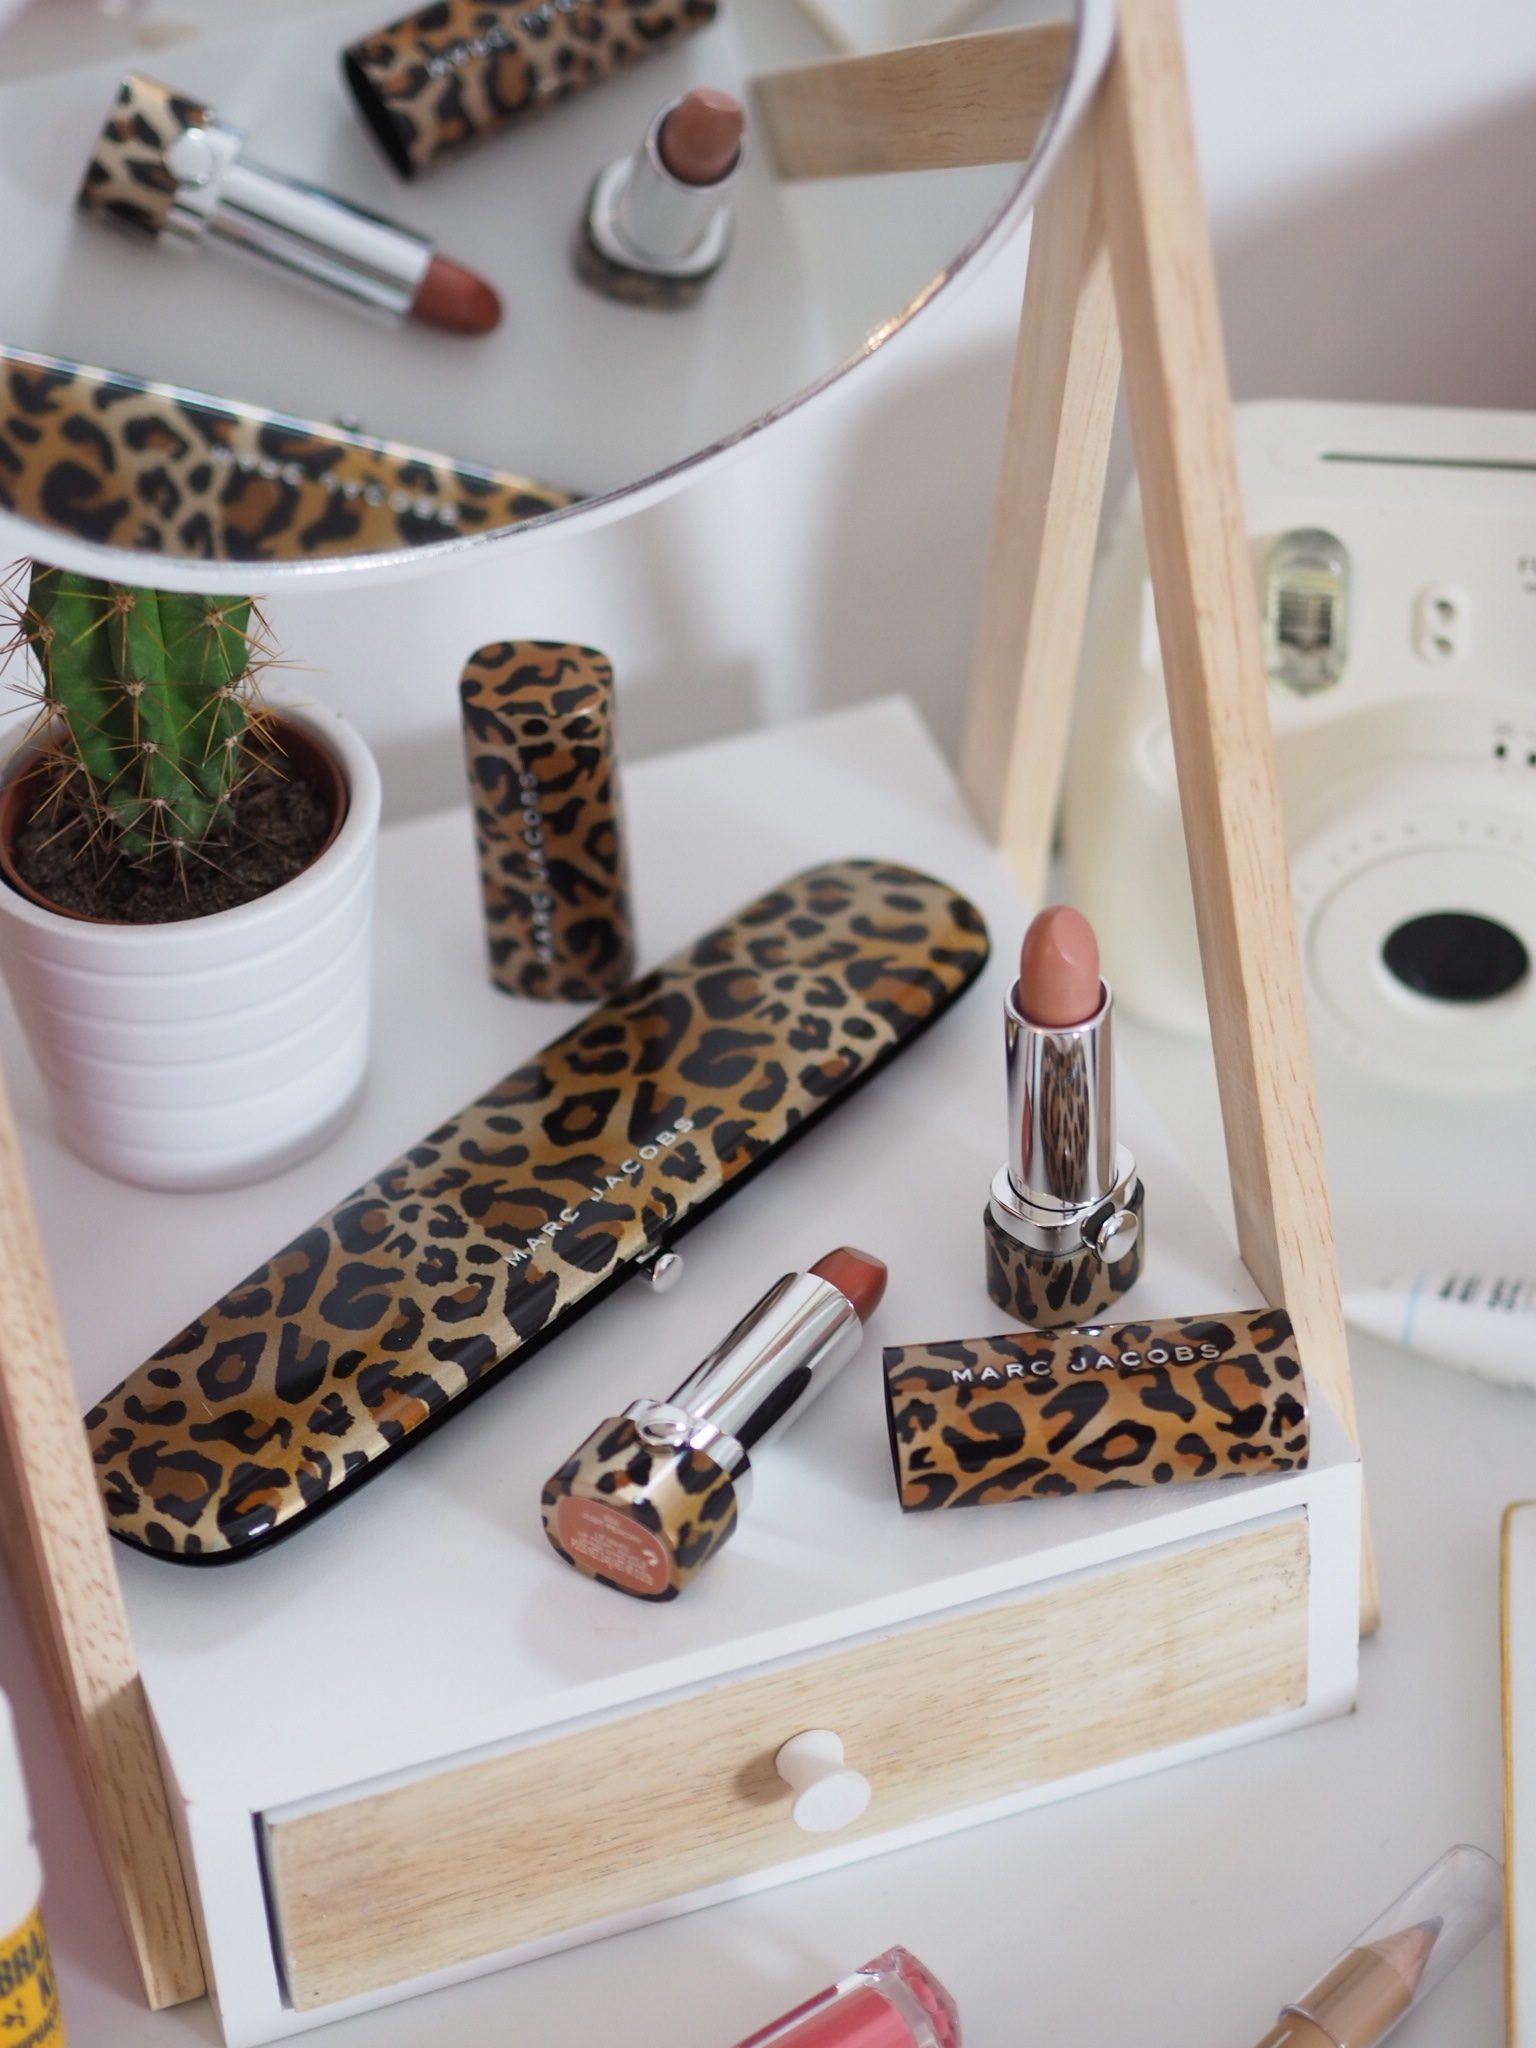 Marc Jacobs Leopard Frost